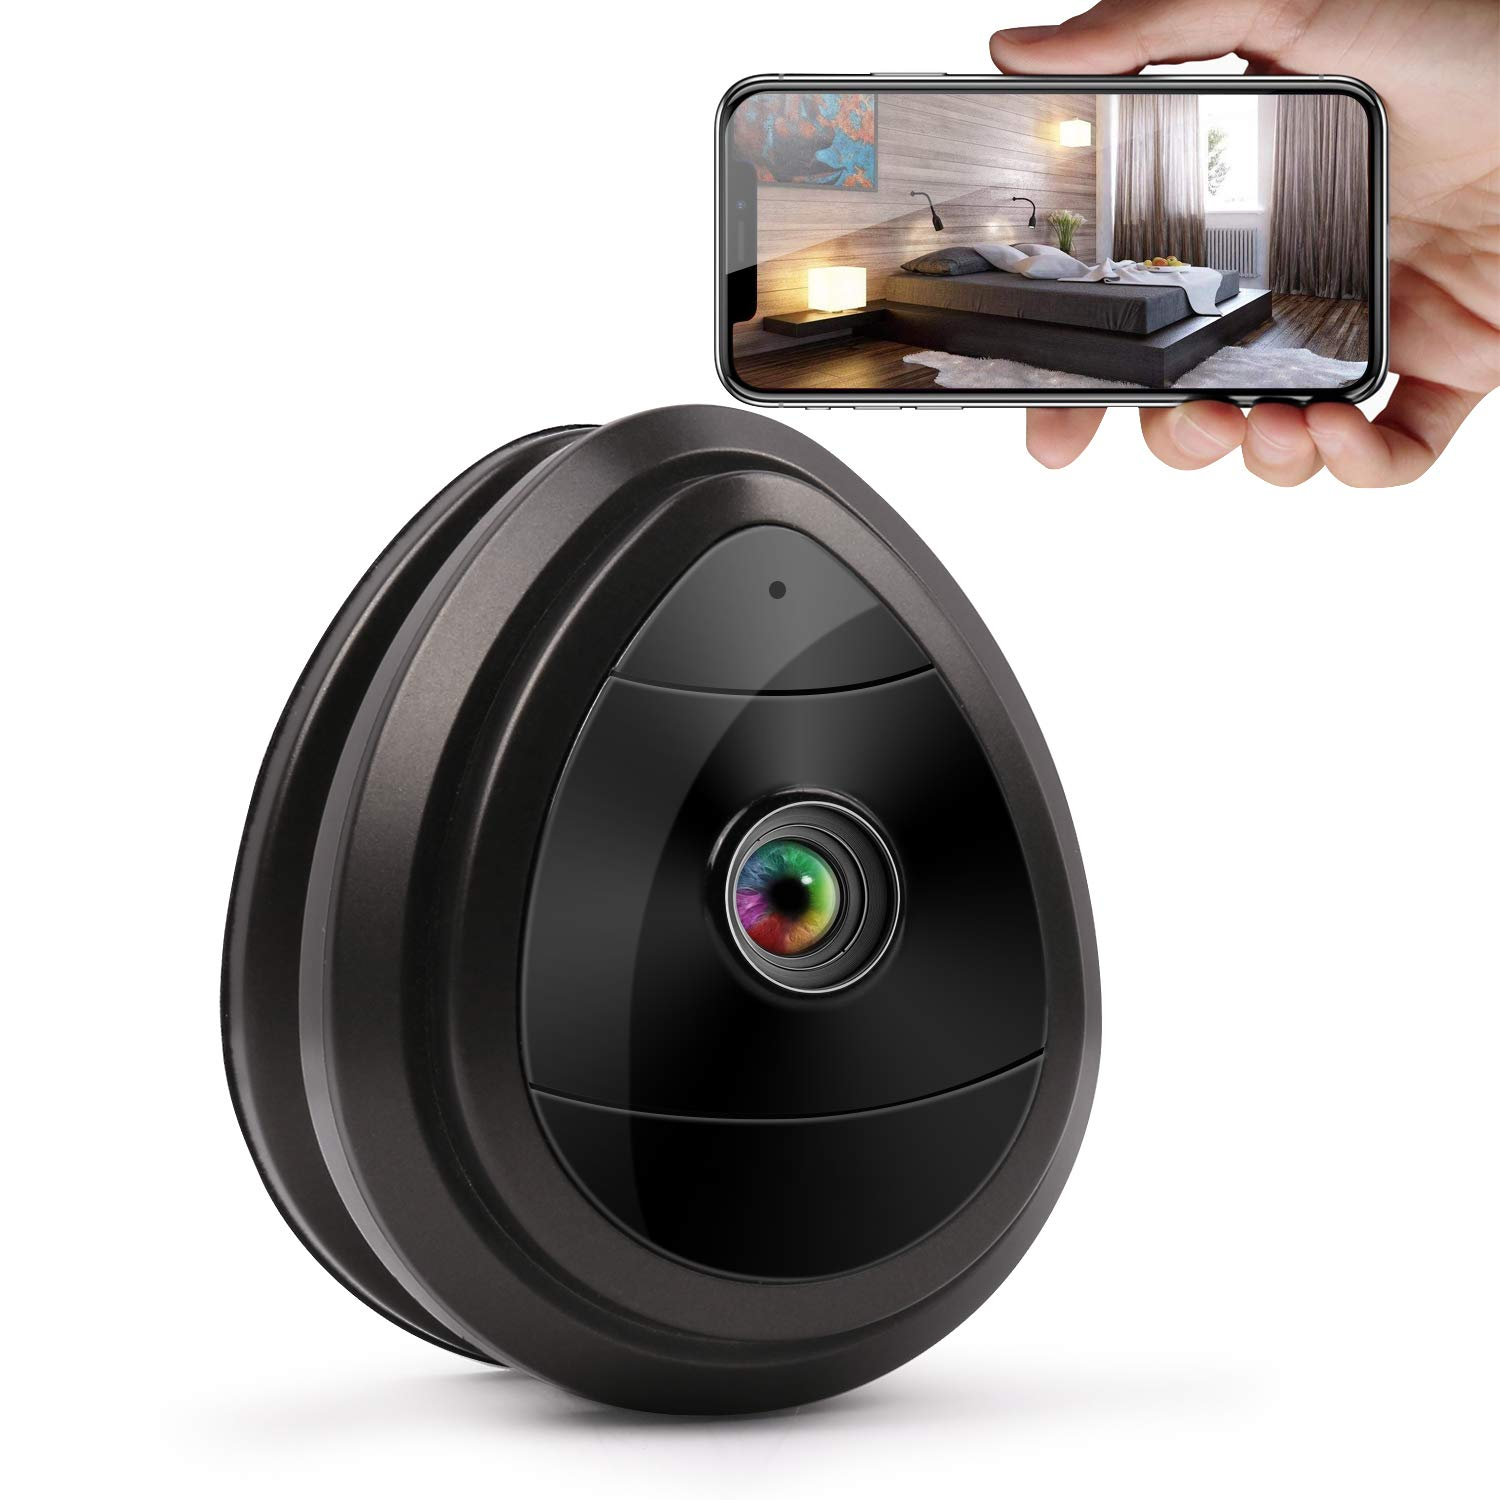 Wireless IP Camera, Home Surveillance Security Camera System with Motion Email Alert & Motion Detection for Home/Office/Baby/Nanny/Pet Monitor by Pop V